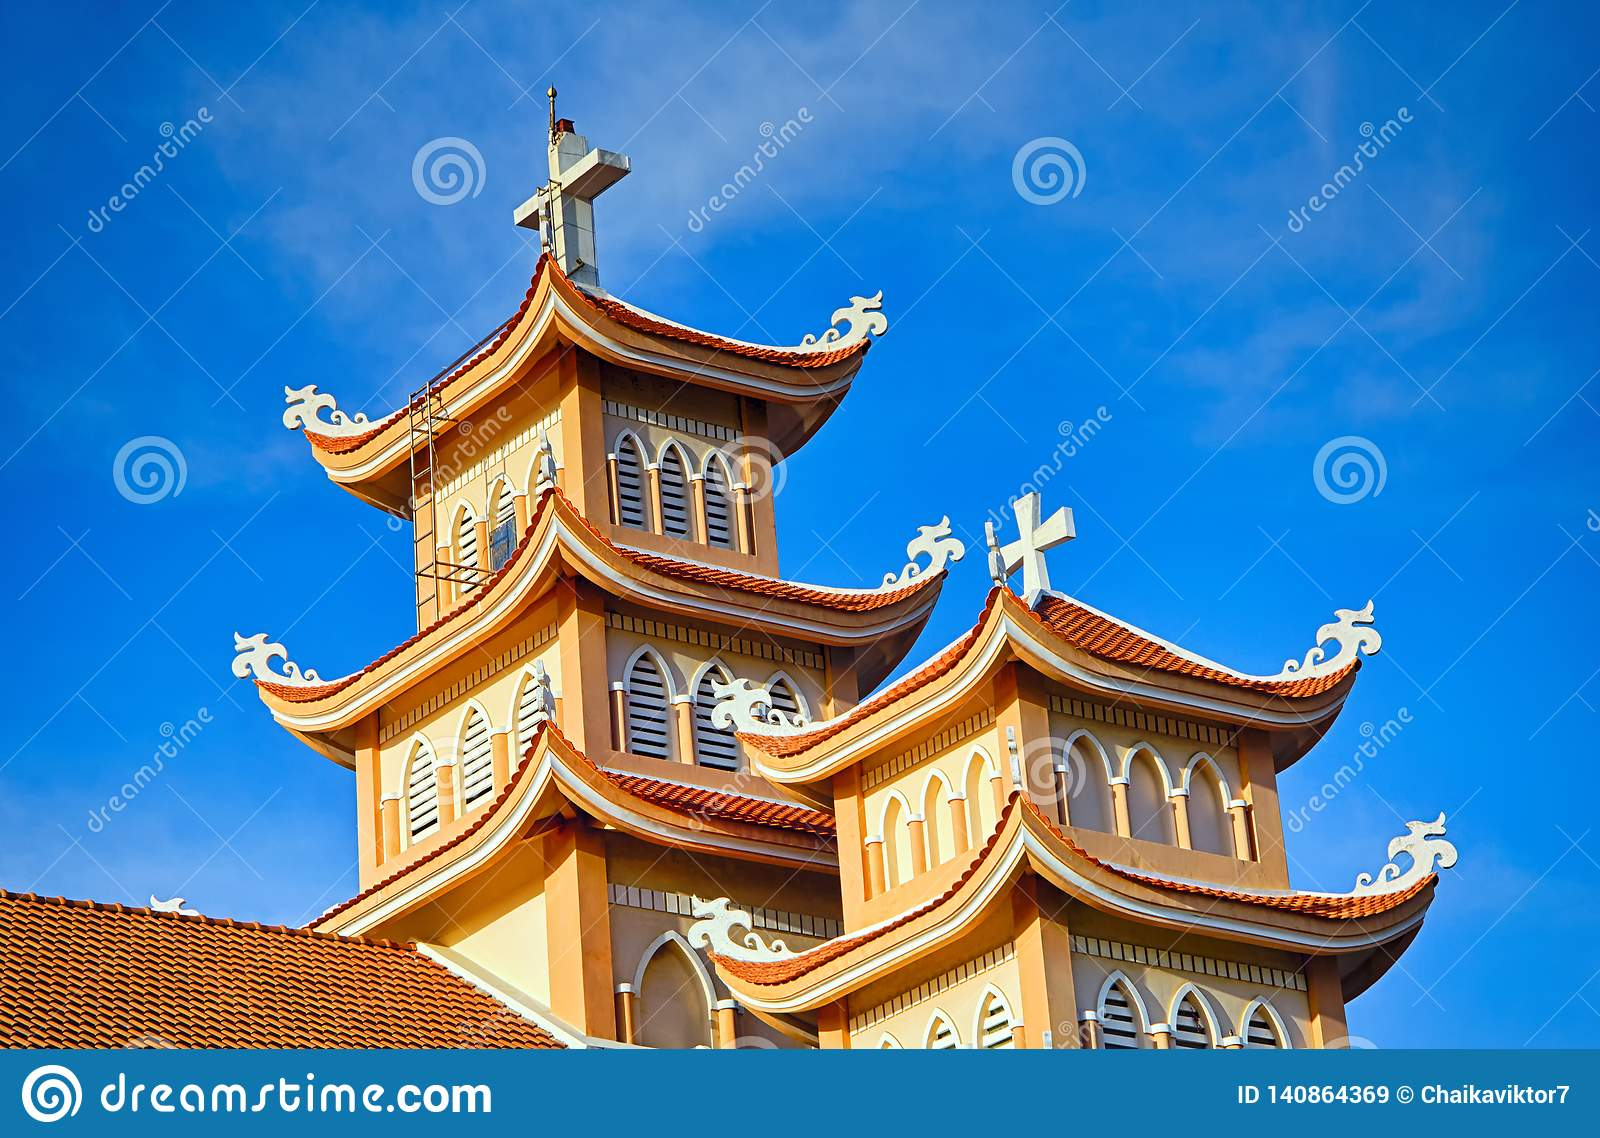 Towers of the Catholic Church in Vietnam